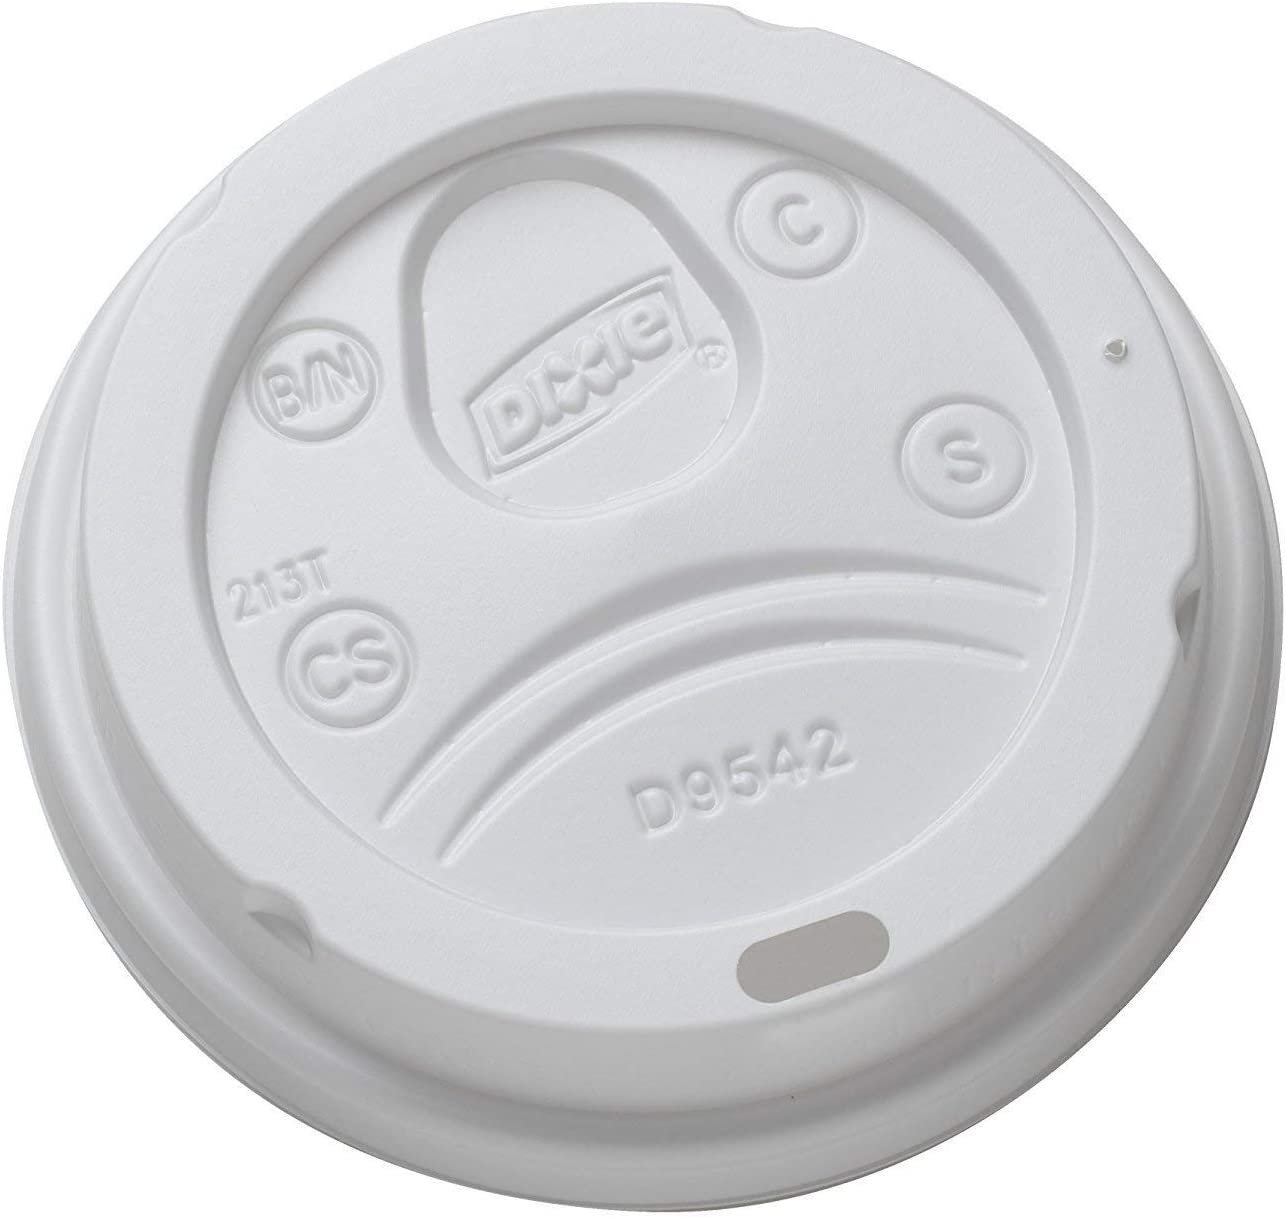 Dixie D9542W Dome Lid for 10-16 Ounce PerfecTouch Cups and 12-20 Ounce Paper Hot Cups, White 100 Lids